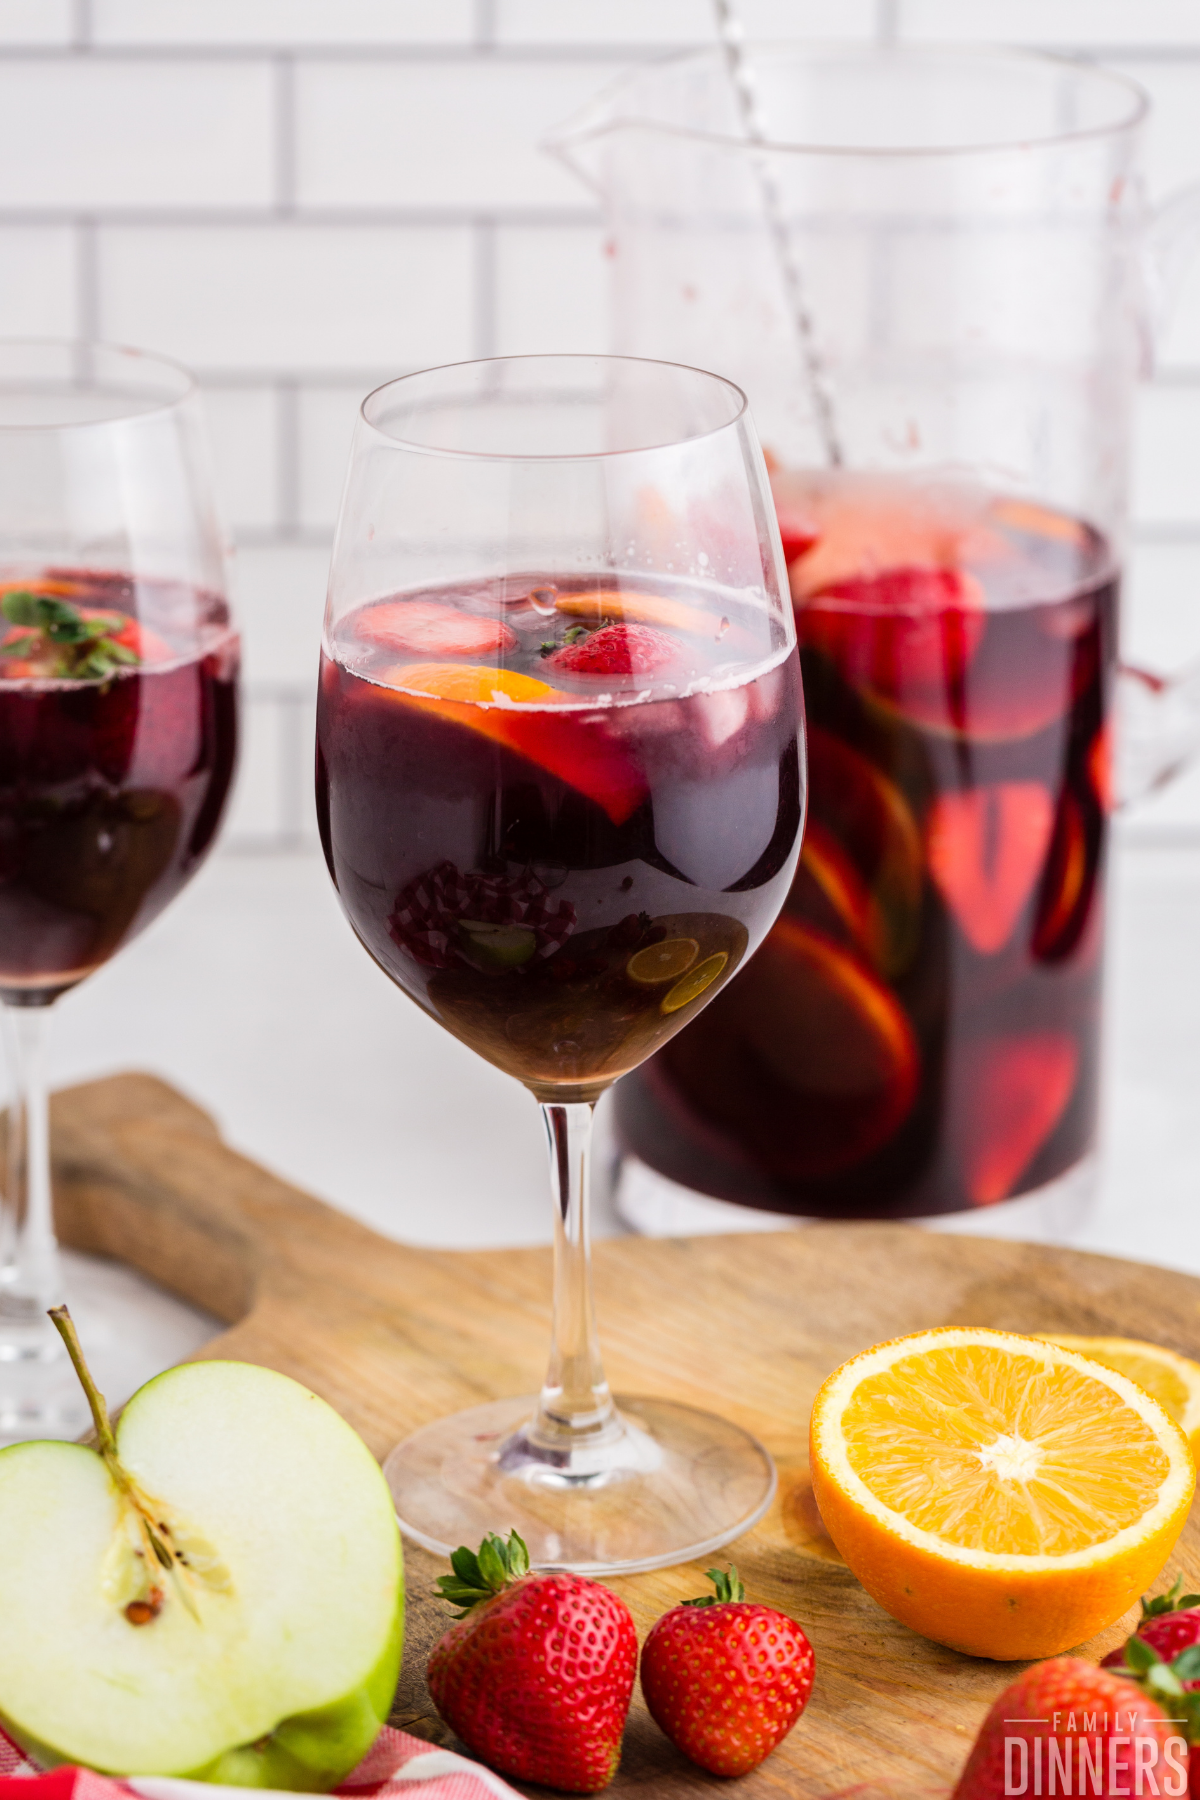 two wine glasses full of red wine sangria with oranges and strawberries and apples floating in them. Glass pitcher in background full of red wine sangria and fruit